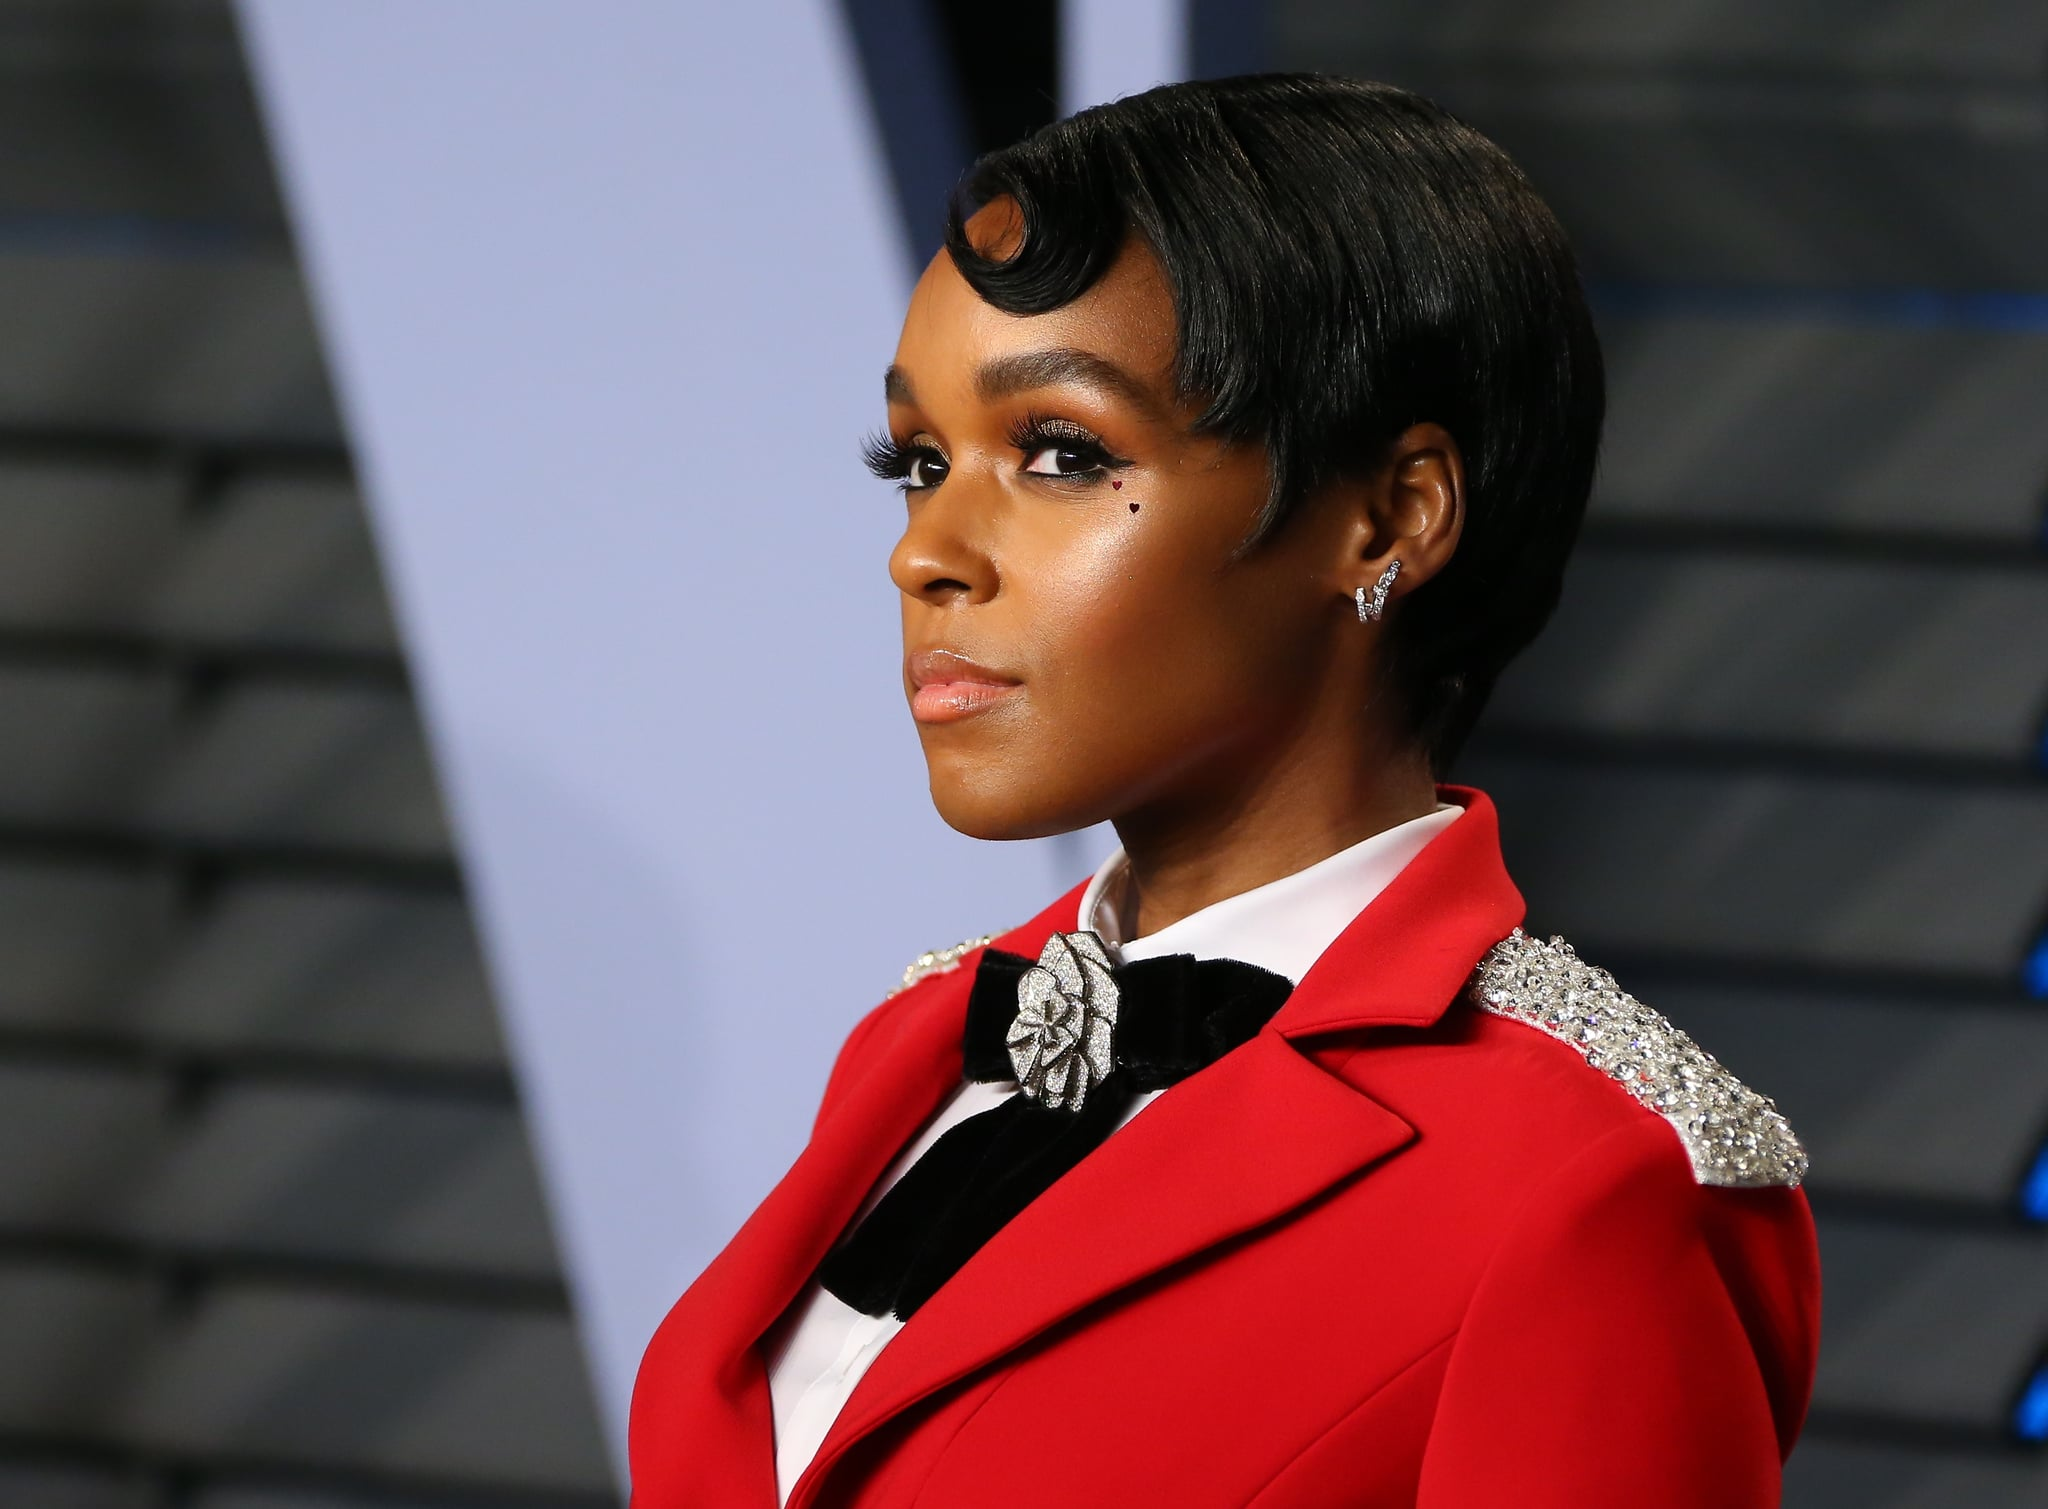 Janelle Monae attends the 2018 Vanity Fair Oscar Party following the 90th Academy Awards at The Wallis Annenberg Center for the Performing Arts in Beverly Hills, California, on March 4, 2018.  / AFP PHOTO / JEAN-BAPTISTE LACROIX        (Photo credit should read JEAN-BAPTISTE LACROIX/AFP/Getty Images)